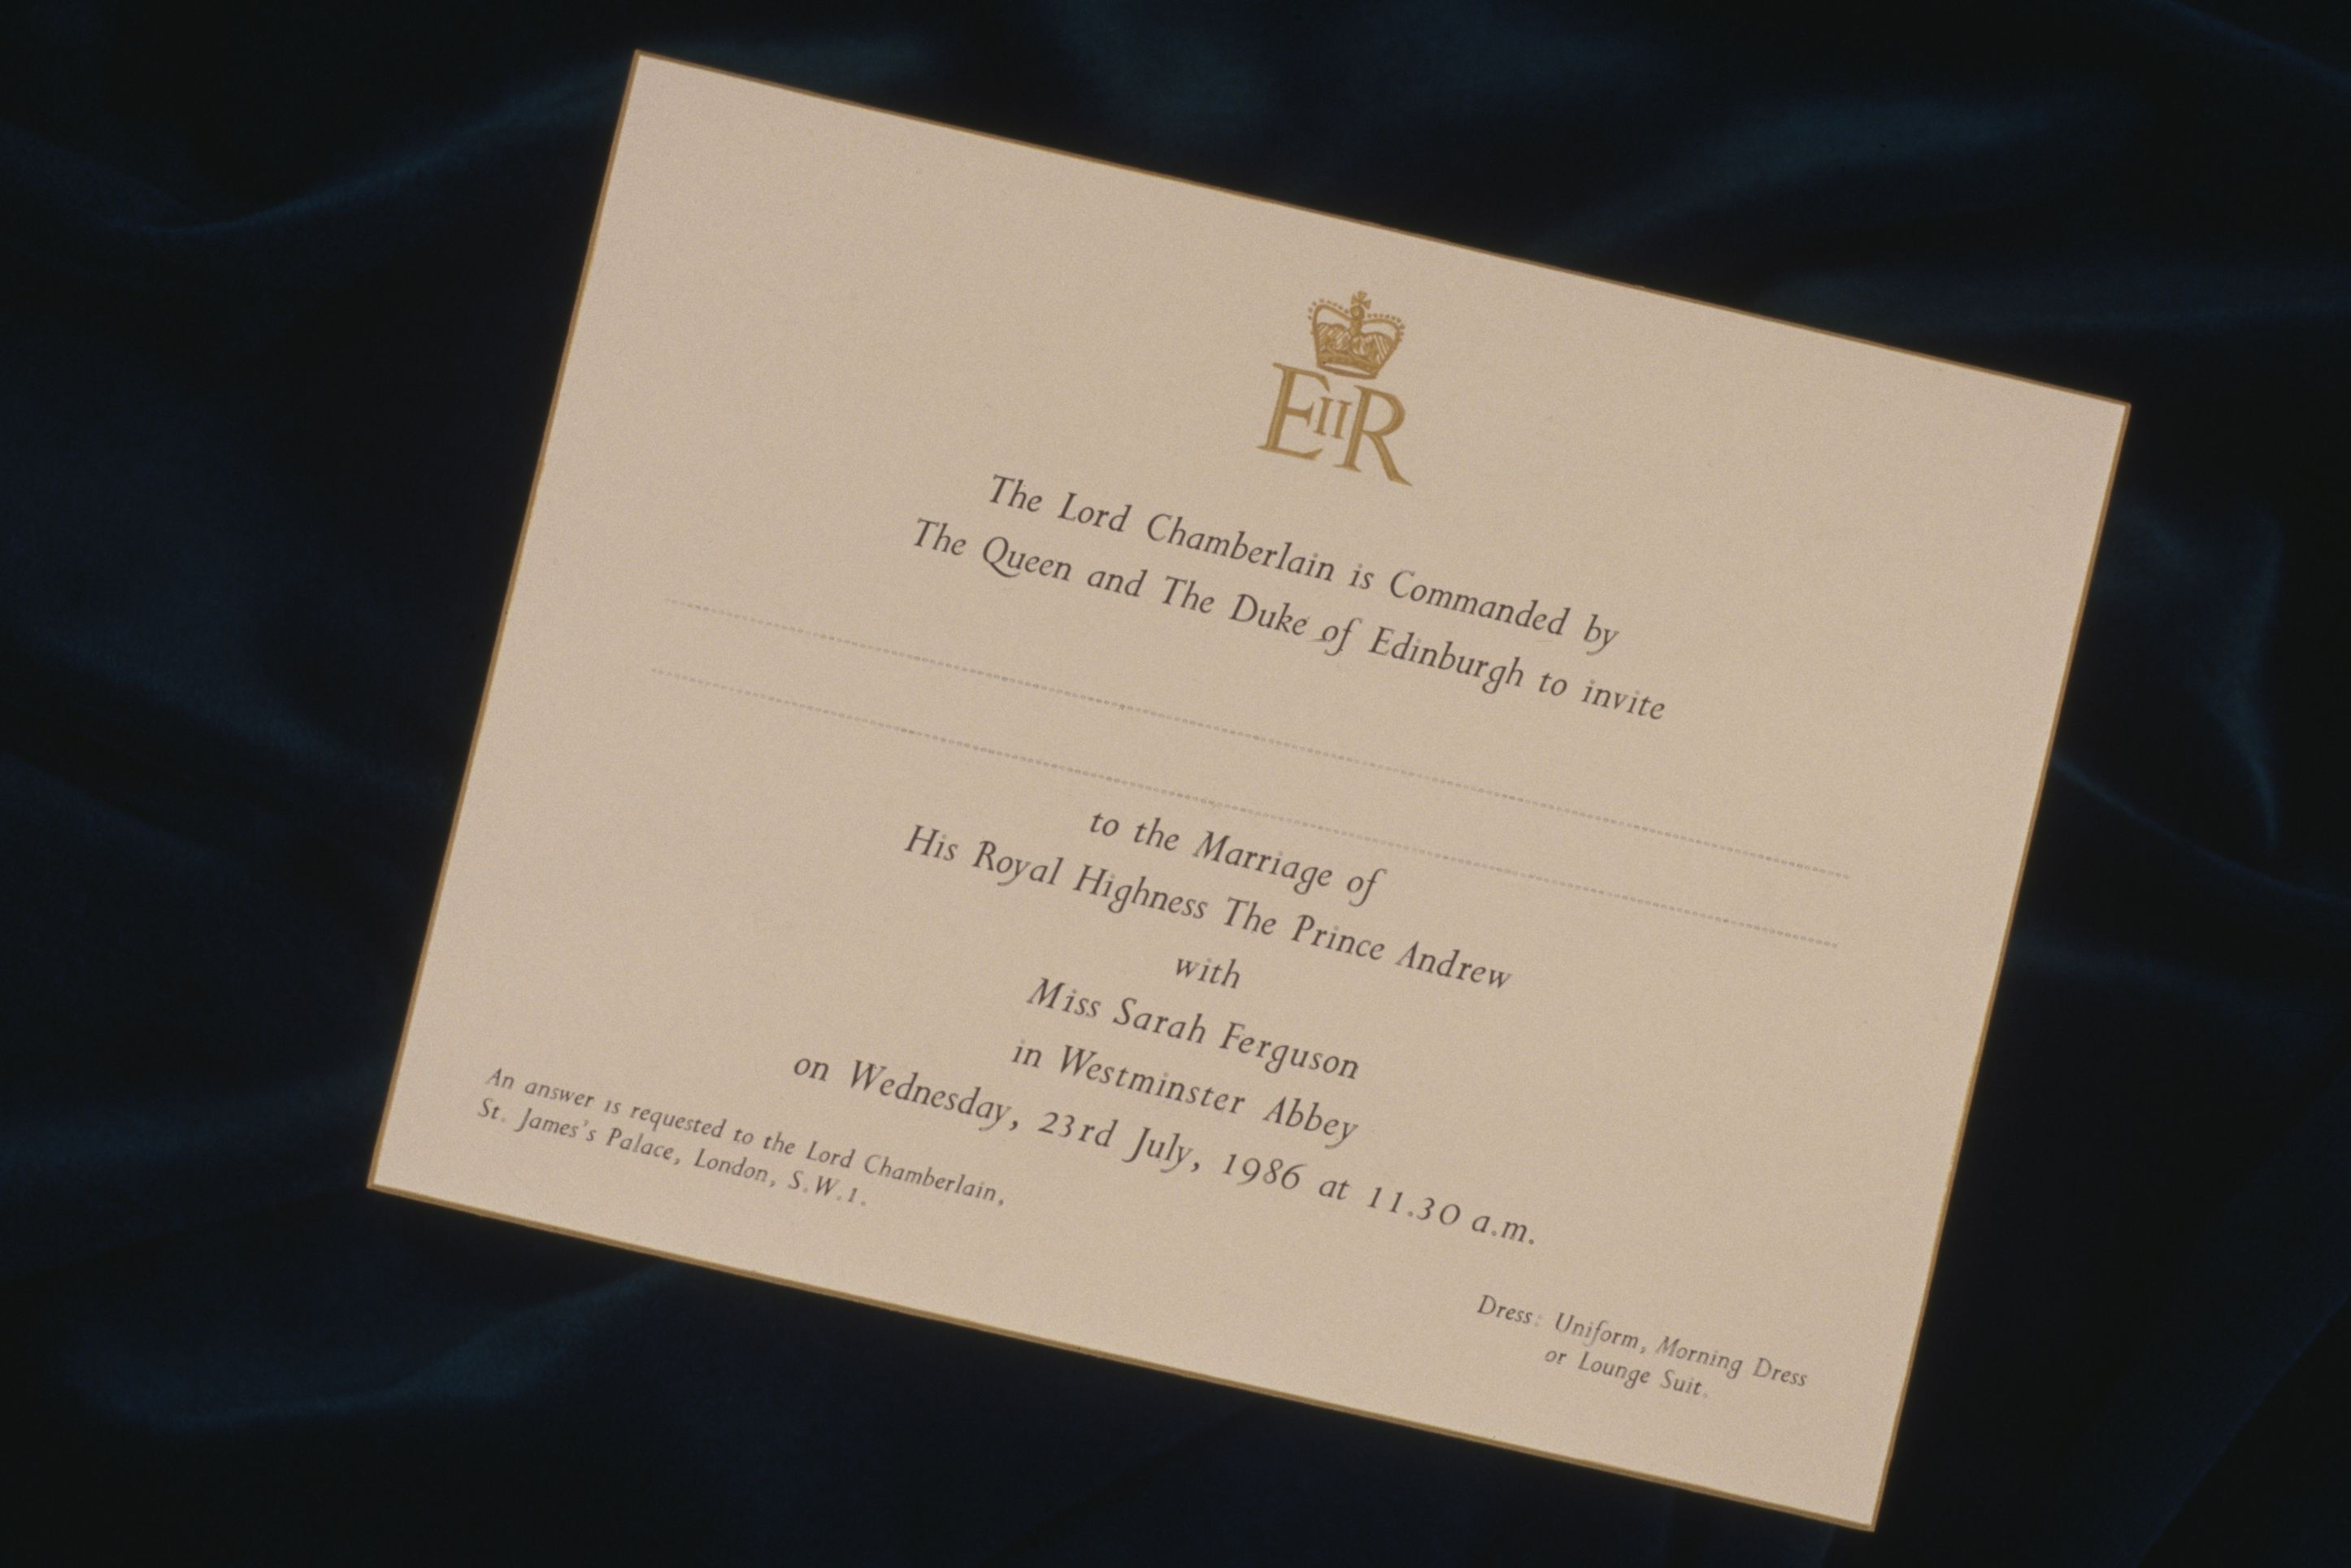 Sarah Ferguson and Prince Andrew Wedding invitation